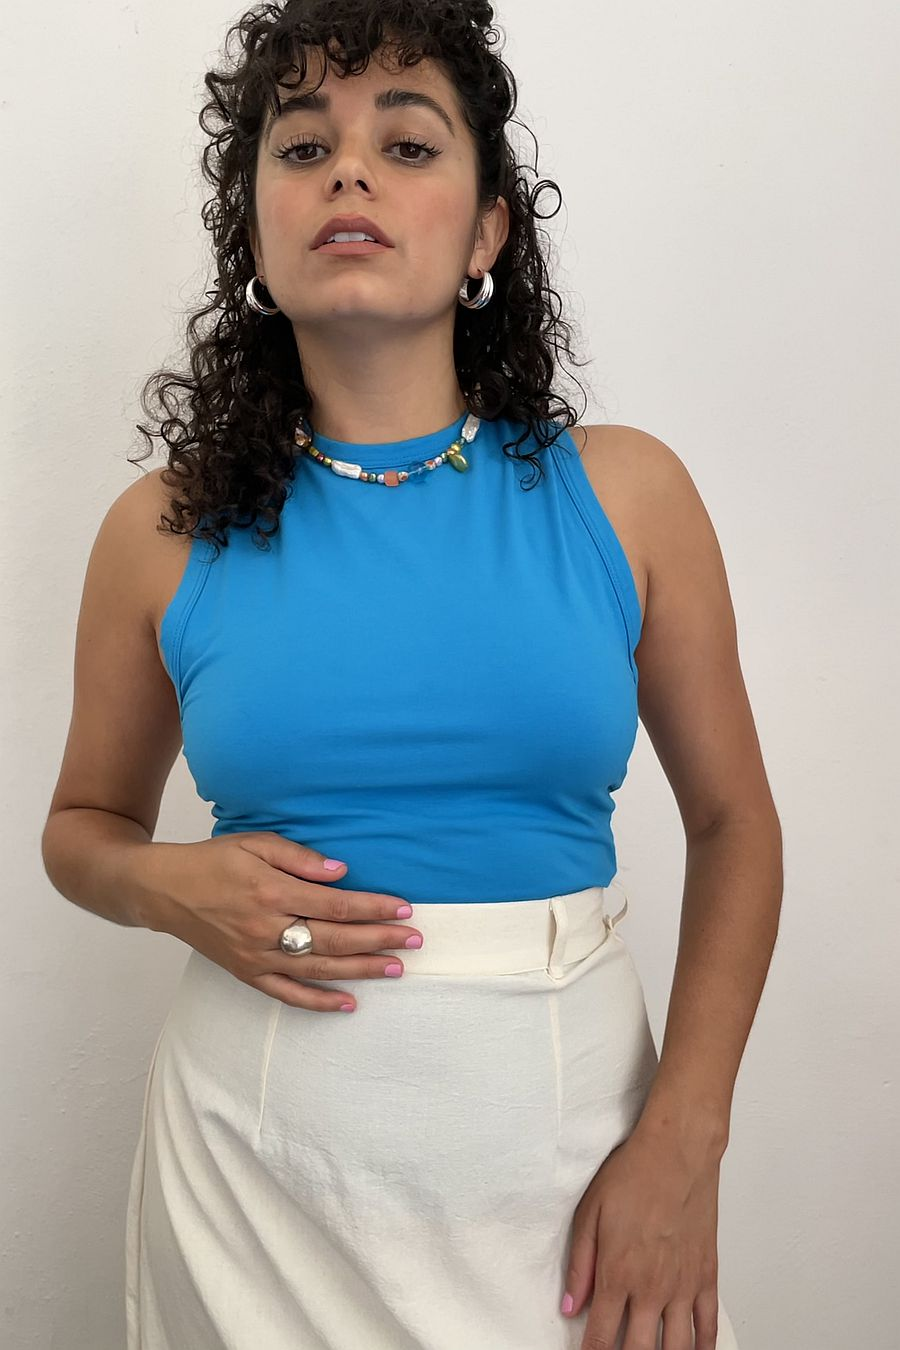 The Line by K Faelan Tank Top - Turquoise